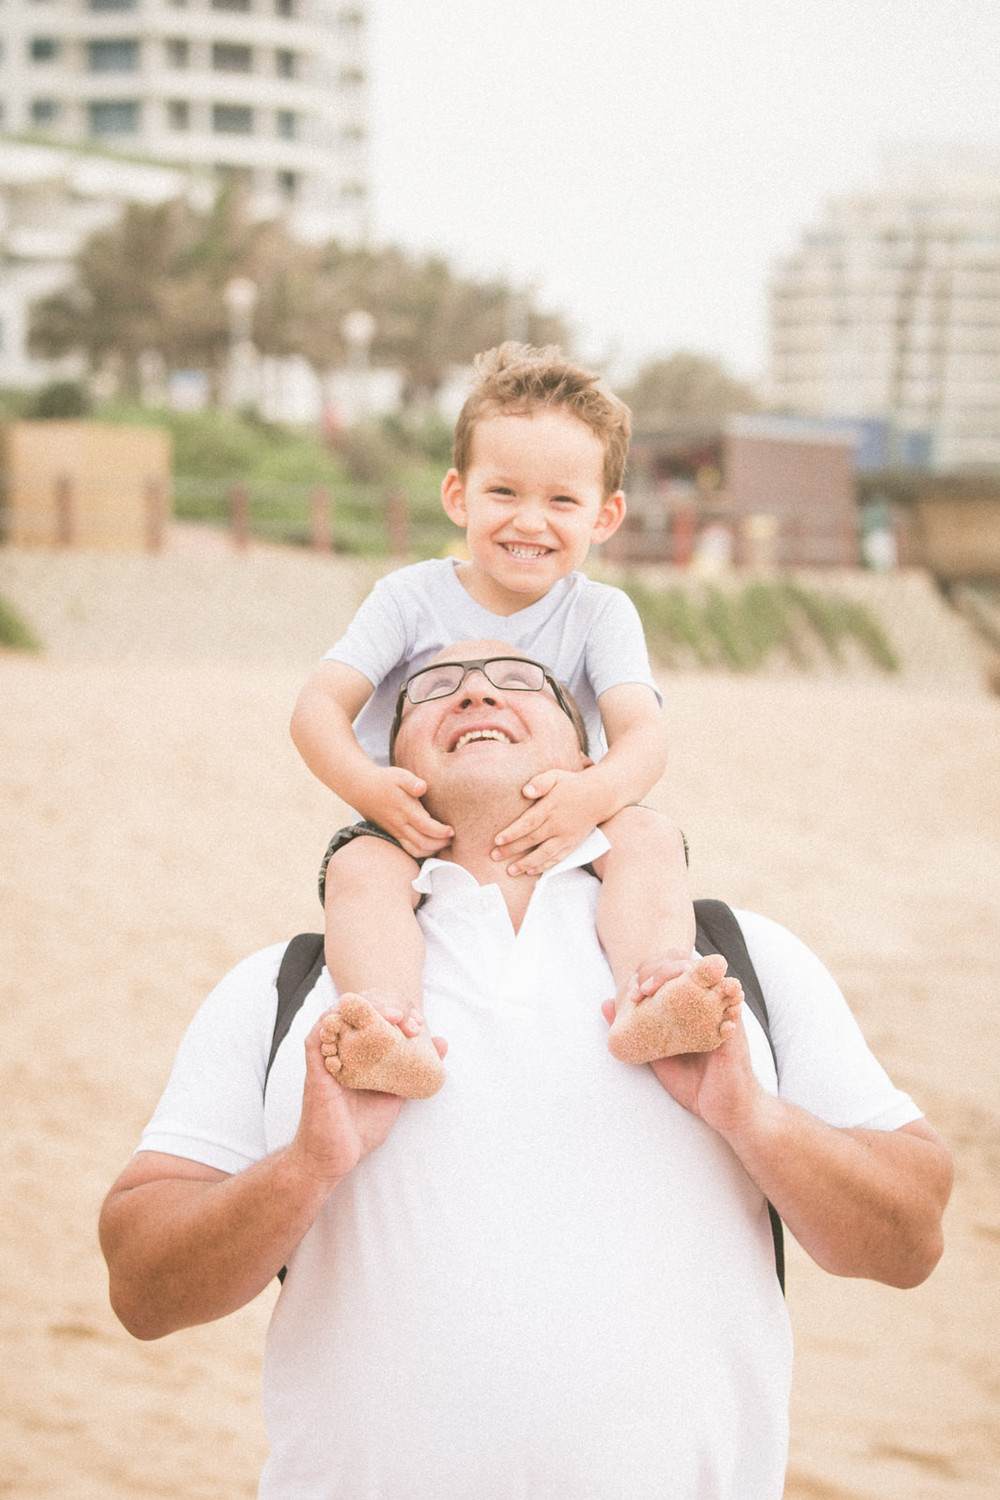 Family photography umhlanga beach rbadal photography dad and son